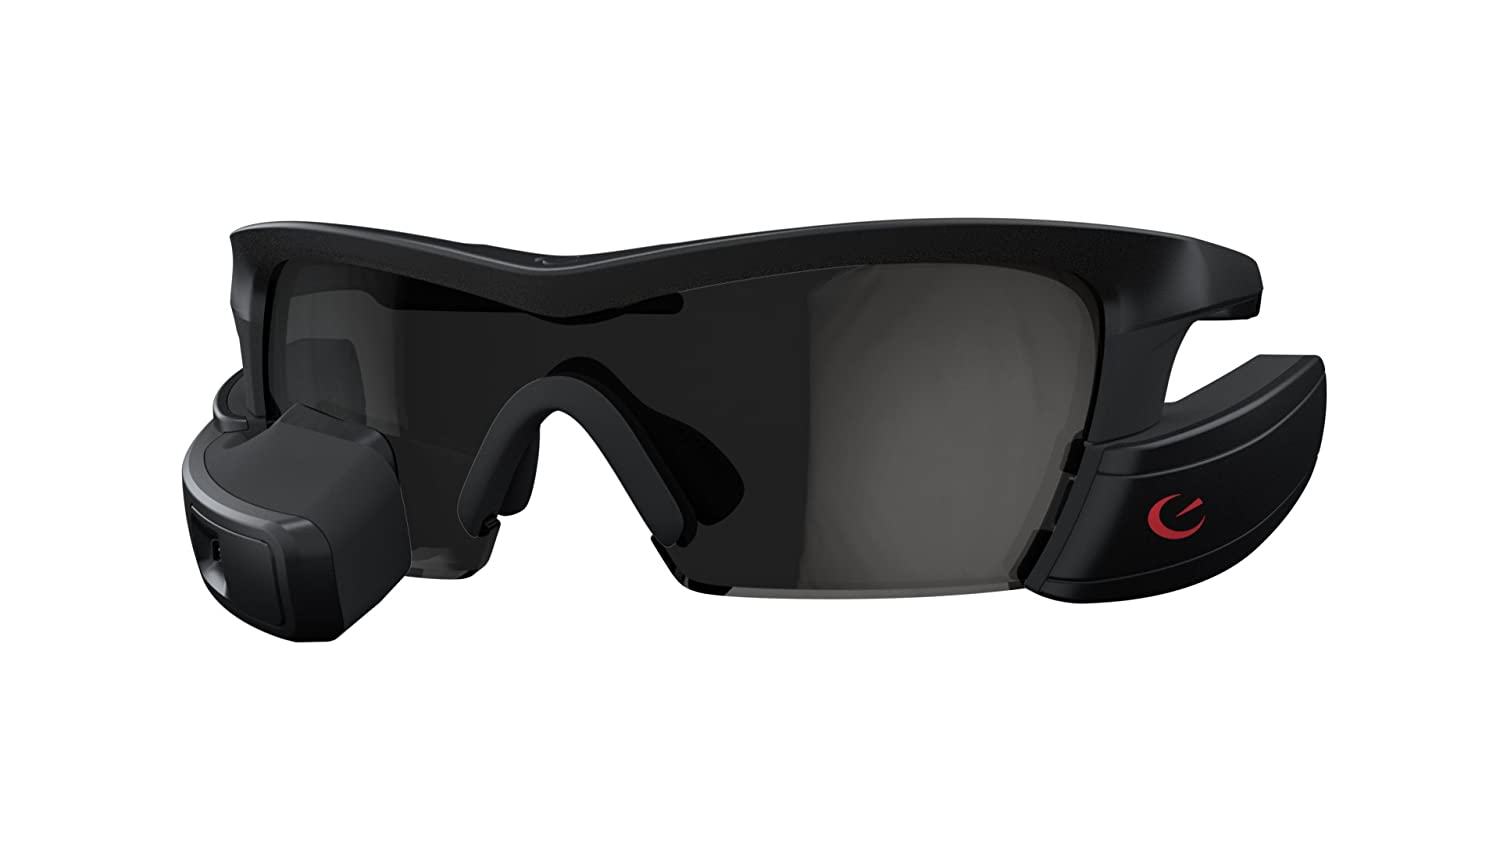 fc84f56f7f8 Amazon.com  Recon Jet Smart Eyewear for Sports and Fitness - Black  Cell  Phones   Accessories